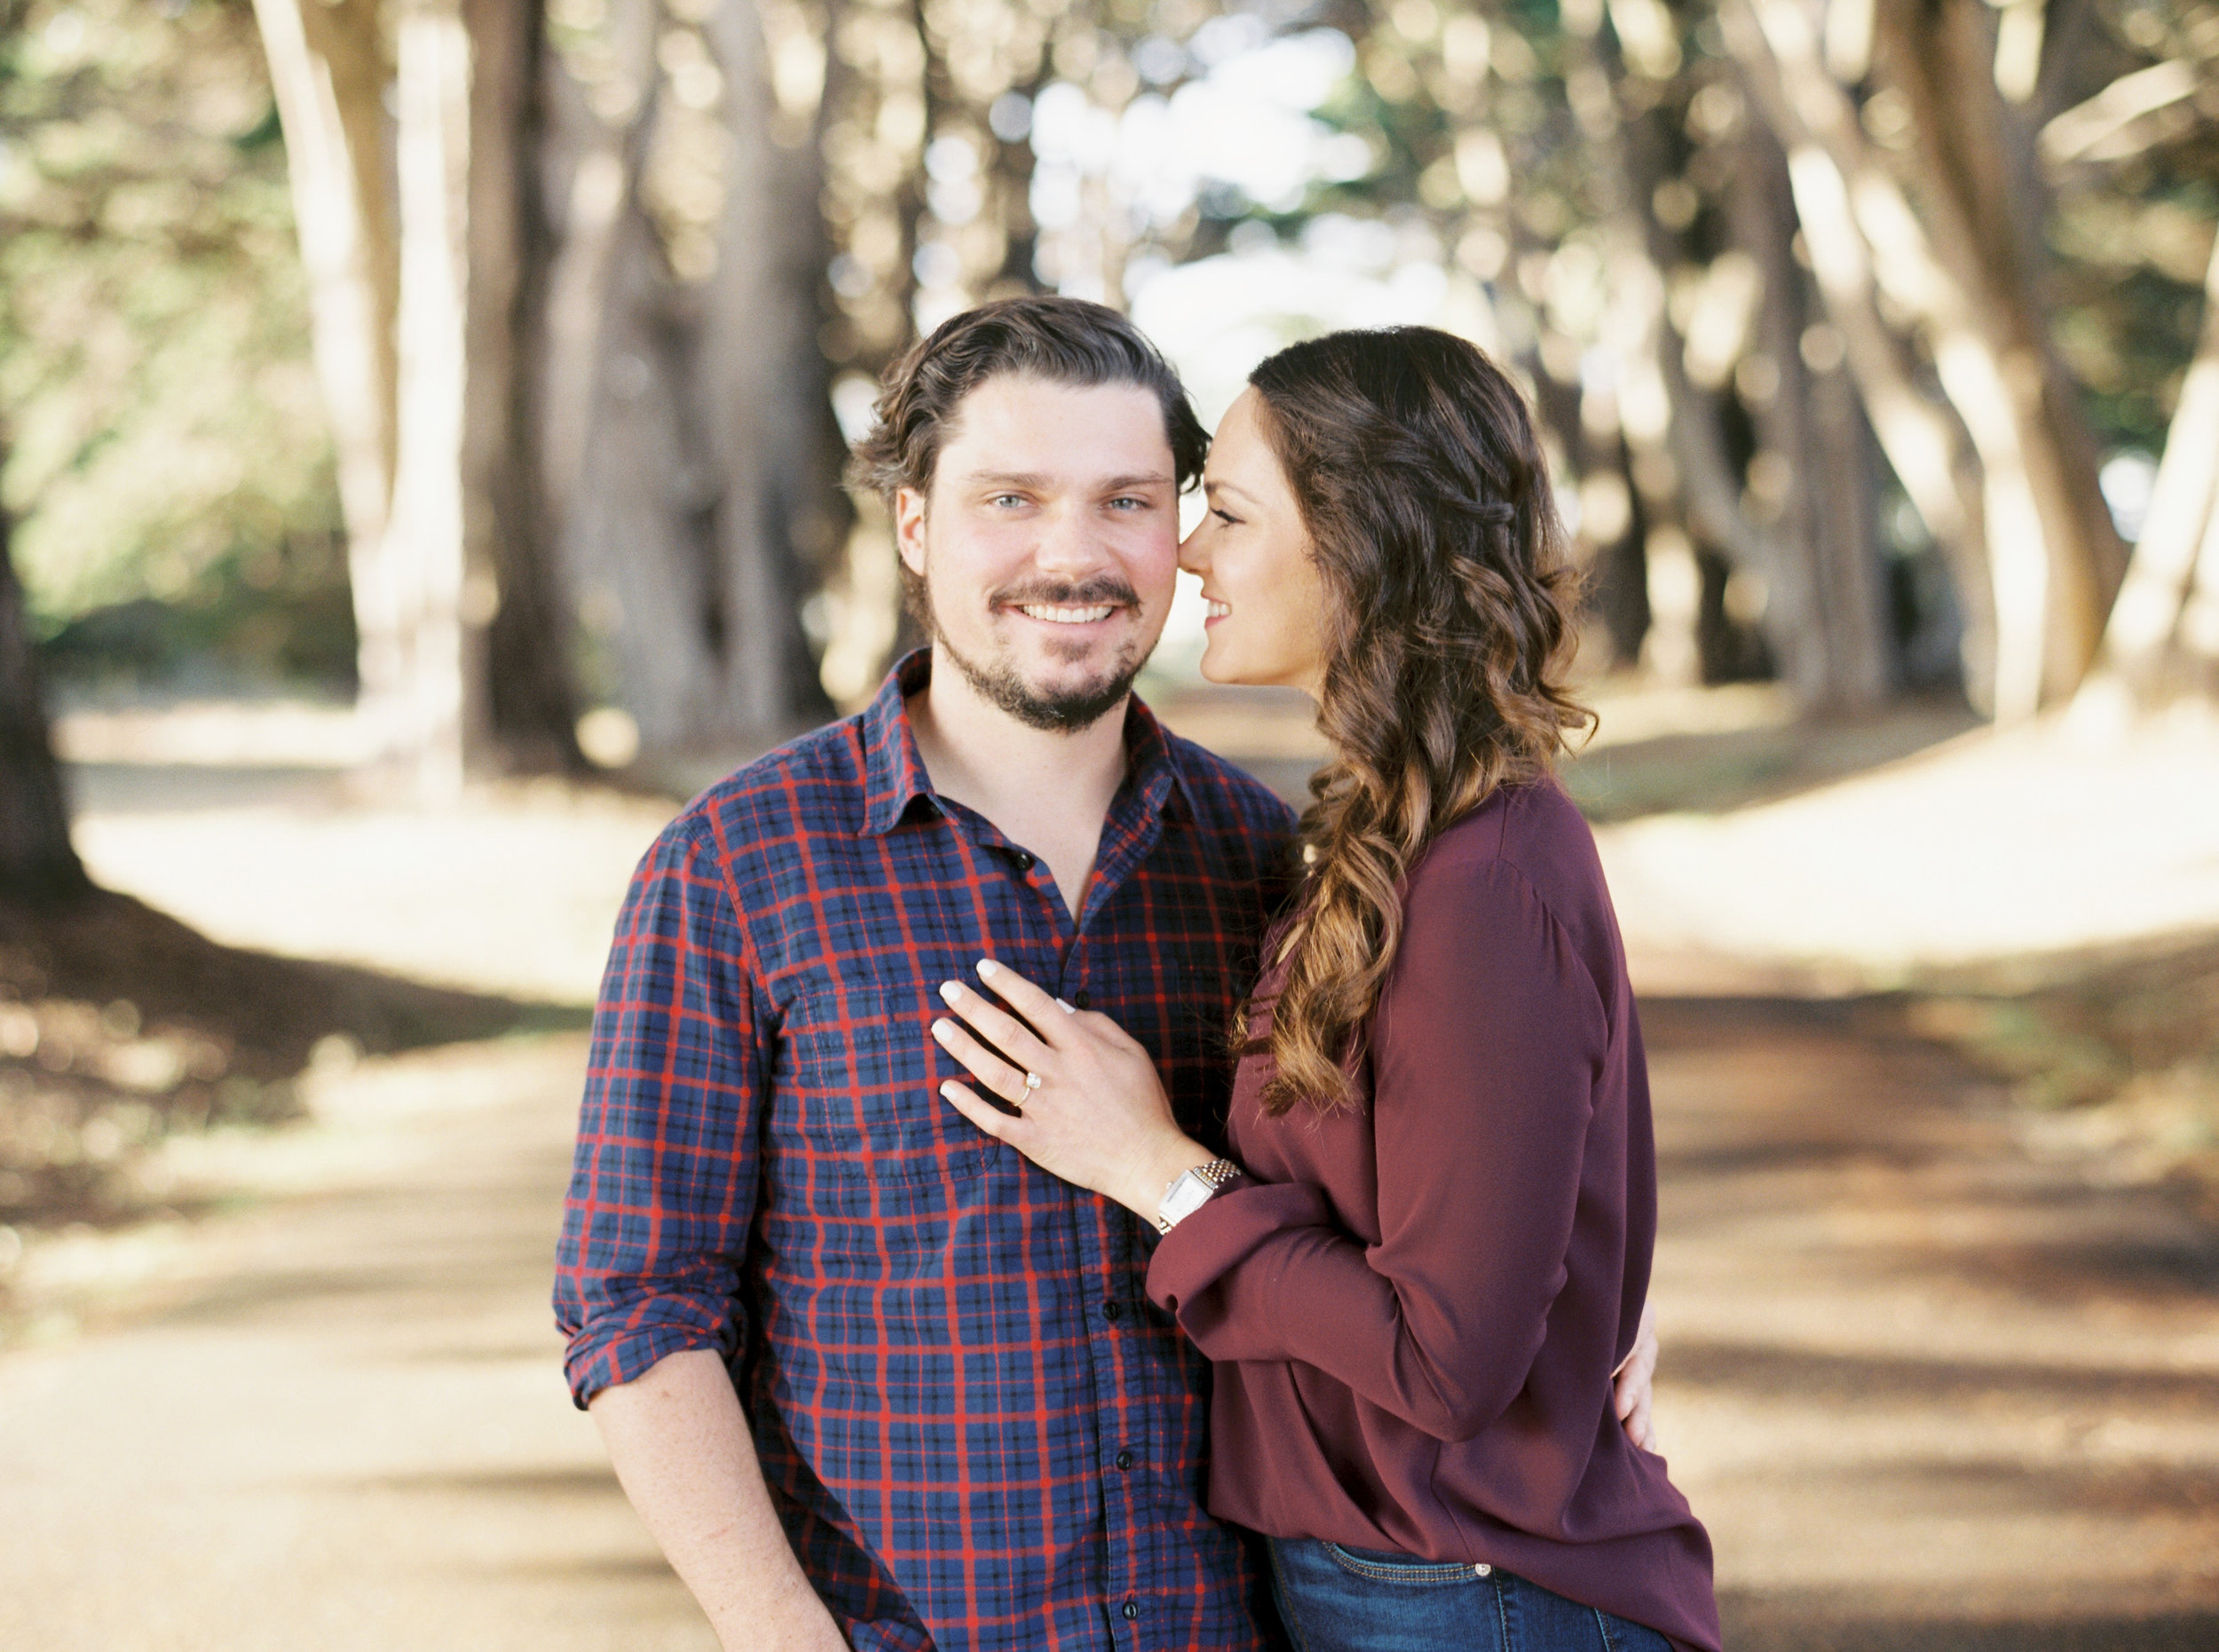 Point Reyes Engagement Session in San francisco California-36.jpg